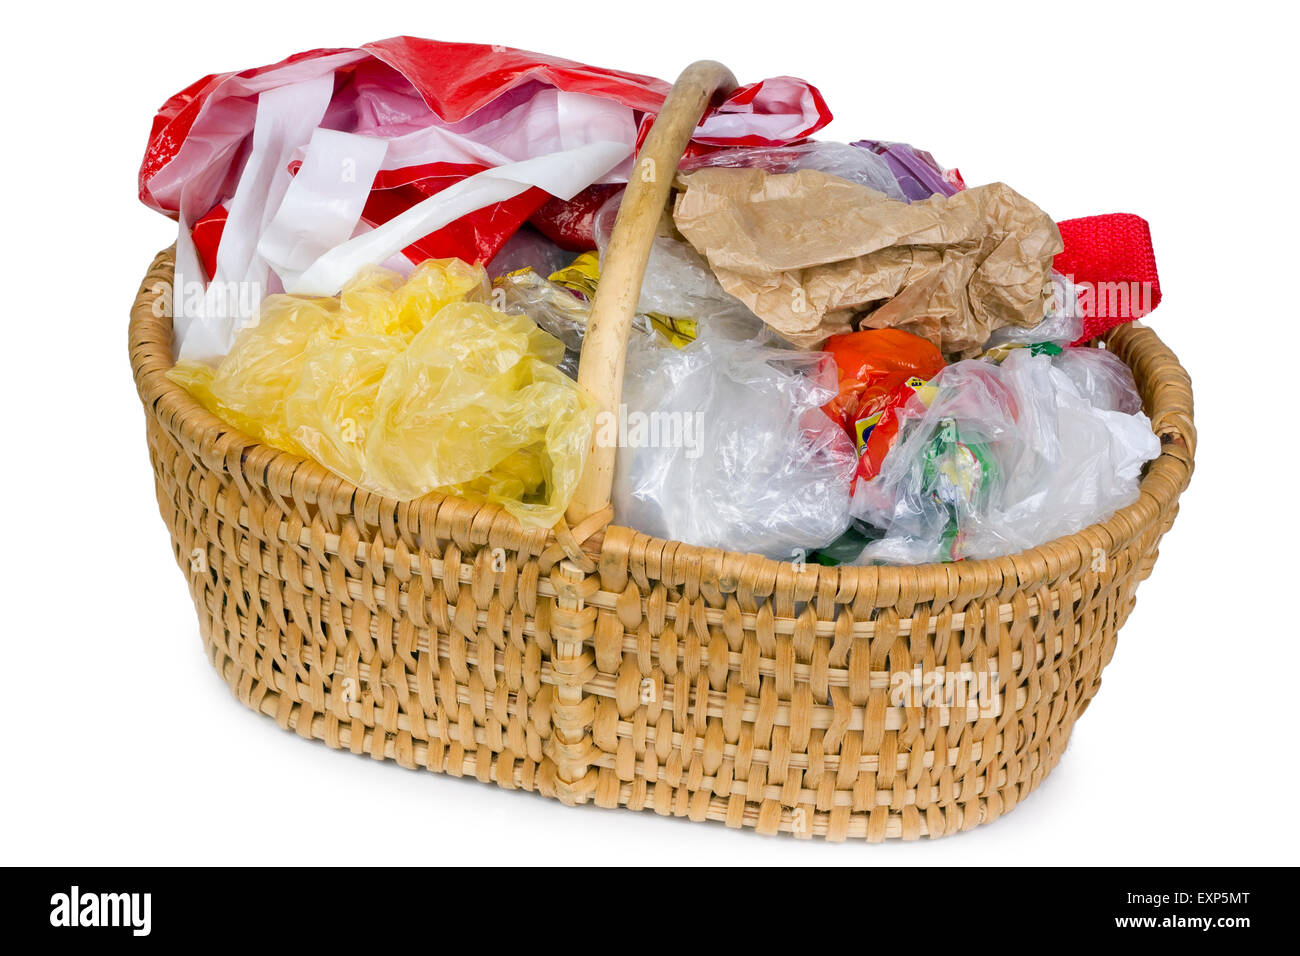 Wattled willow  basket with plastic old bags for packing of products. Isolated - Stock Image